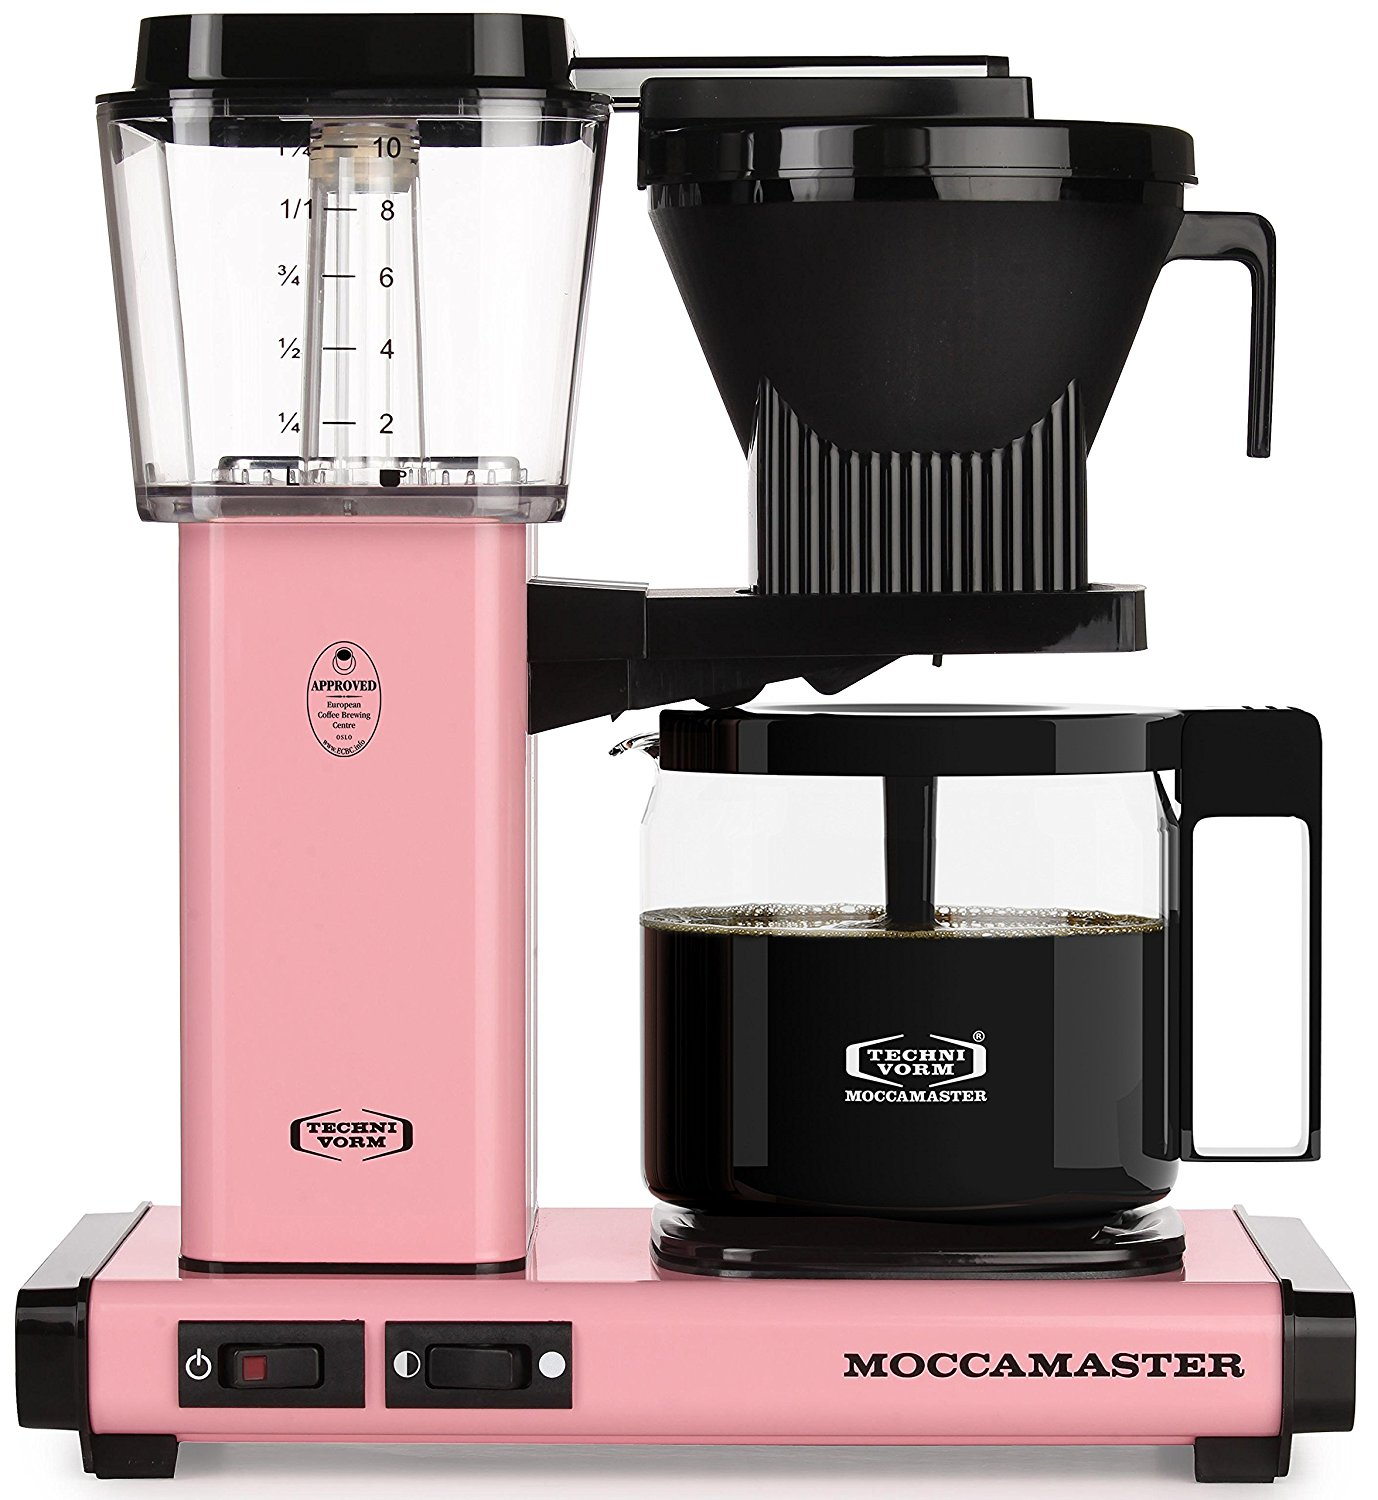 Moccamaster Kbg 741 10 Cup Coffee Brewer With Glass Carafe